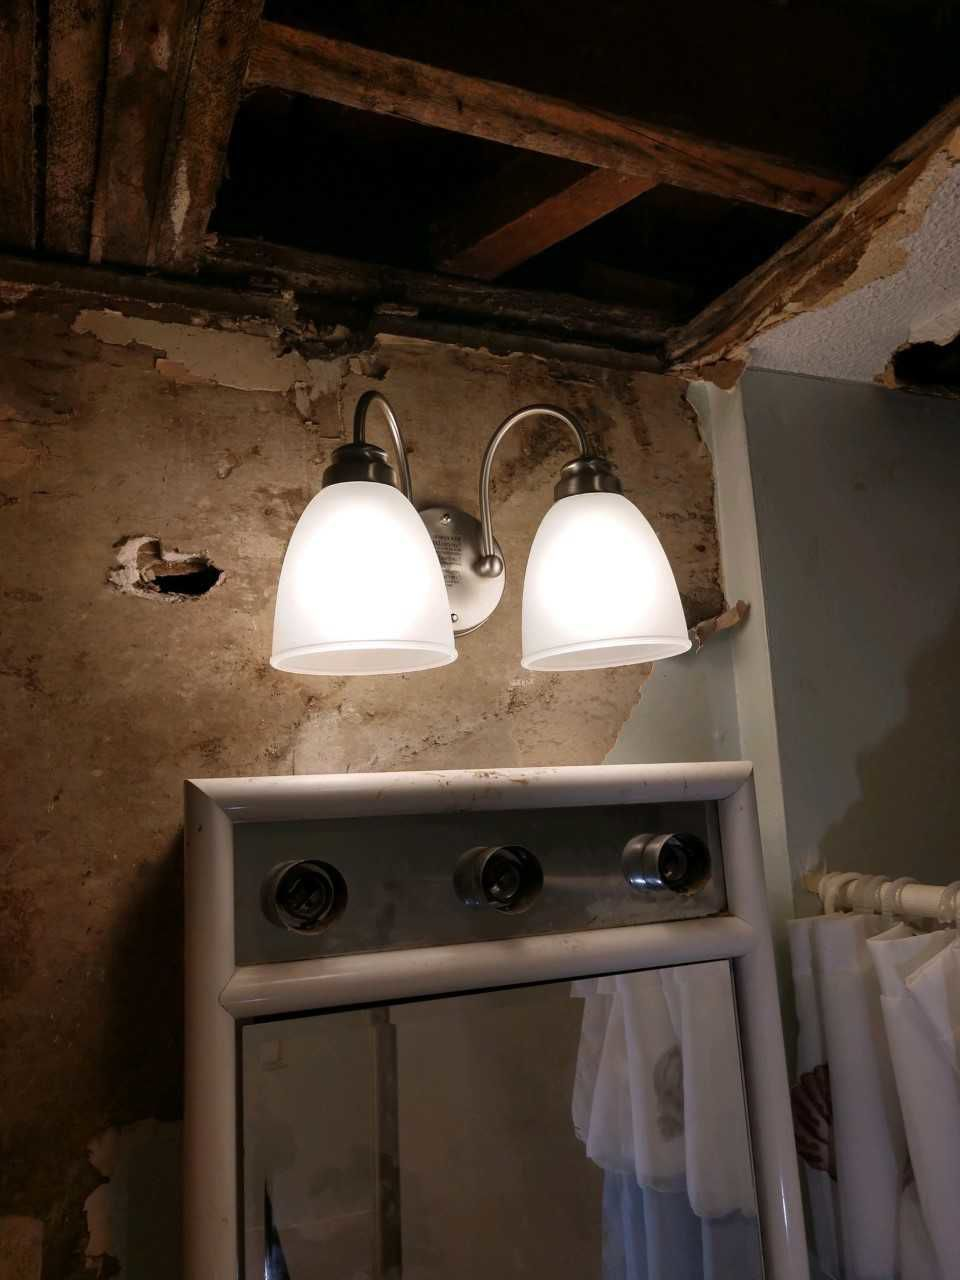 Local electrician helps complete unfinished work in Springfield home